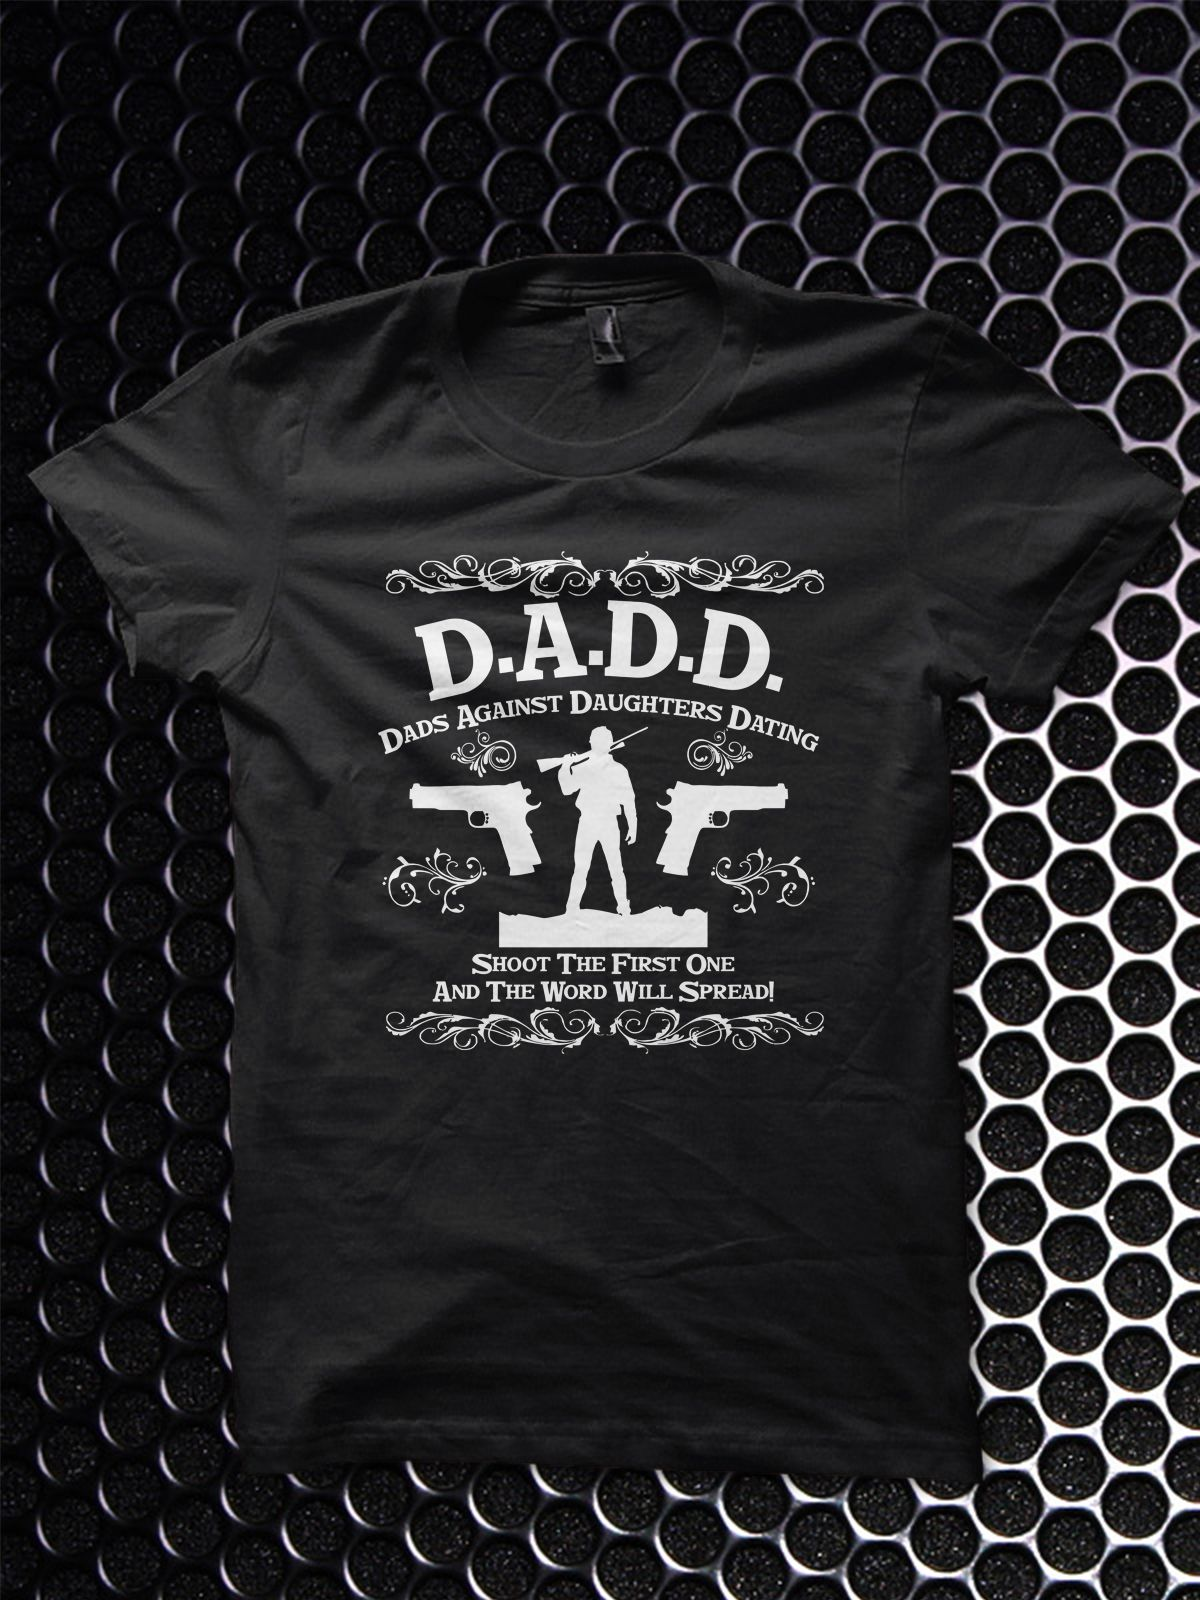 Dads against daughters dating democrats shirts